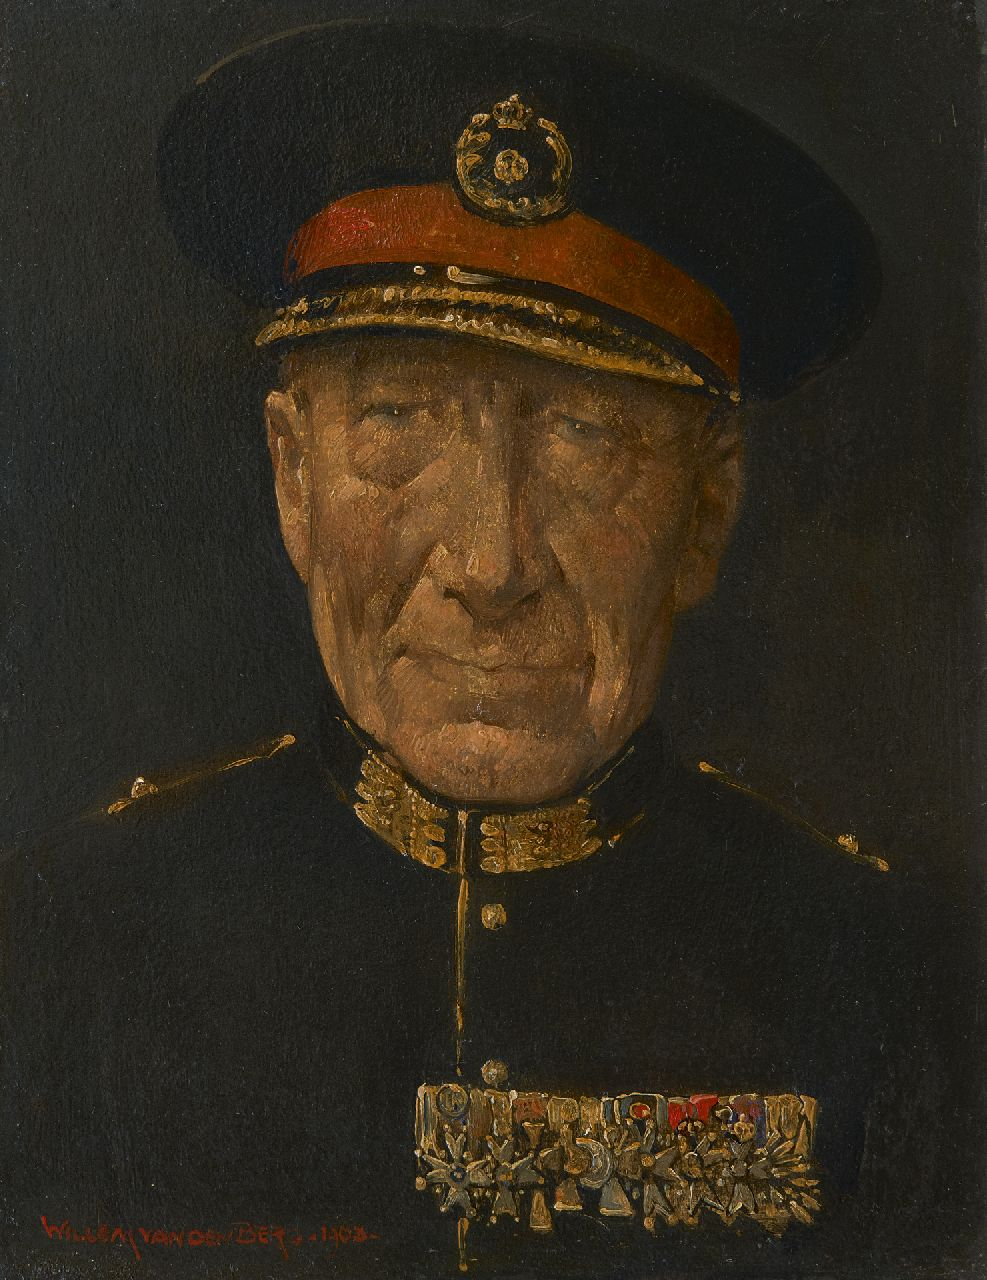 Berg W.H. van den | 'Willem' Hendrik van den Berg | Paintings offered for sale | Portrait of a general in full dress, oil on board 20.8 x 16.0 cm, signed l.l. and dated 1963